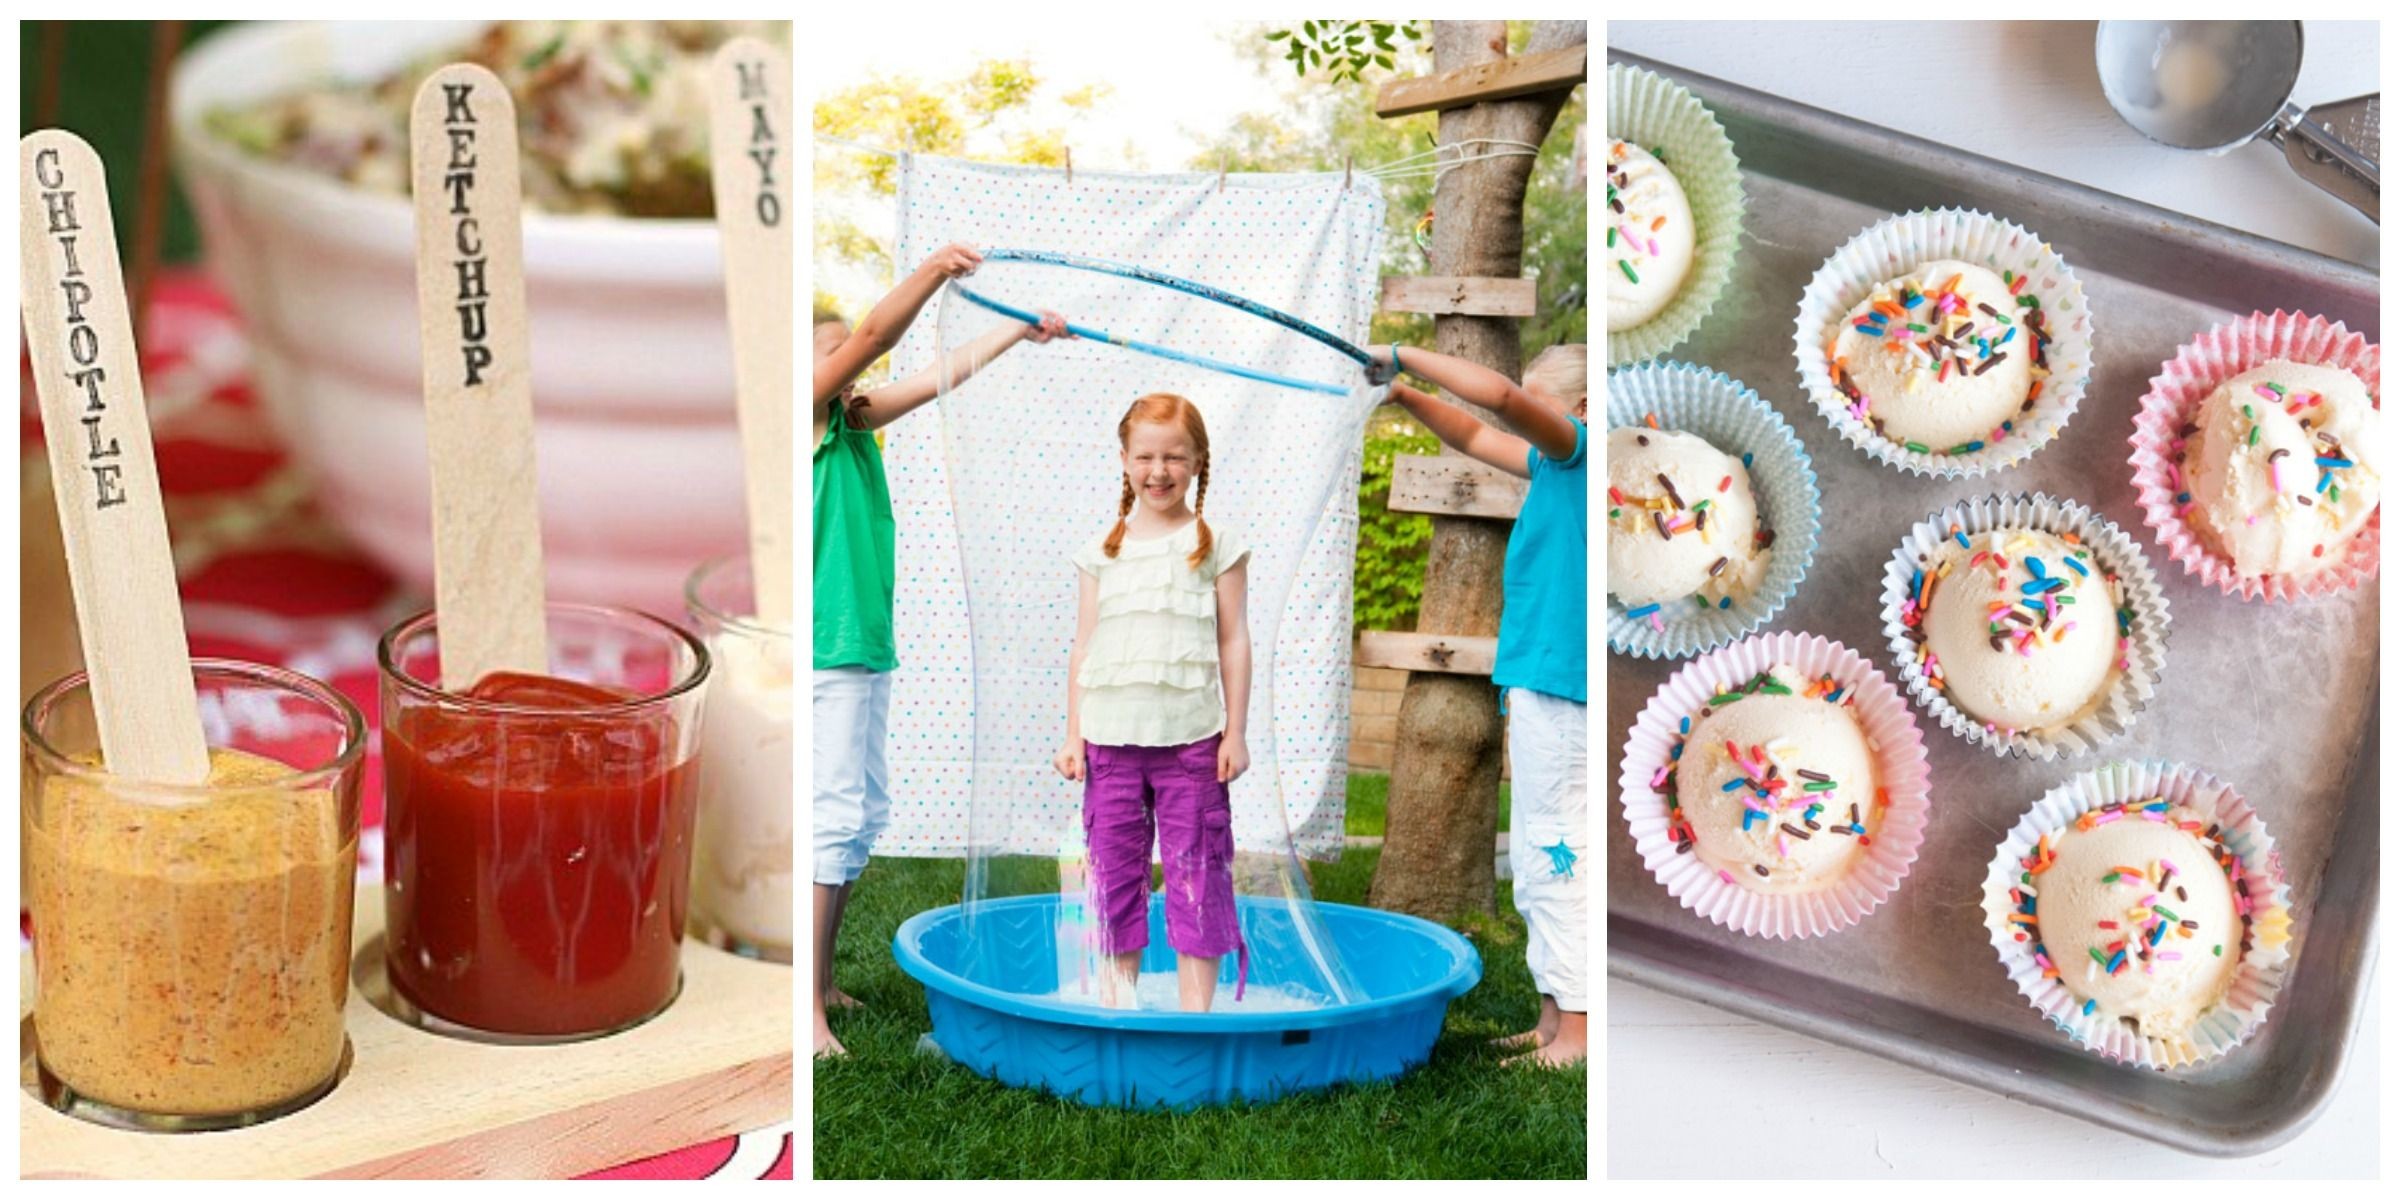 31 Best Backyard BBQ Party Ideas